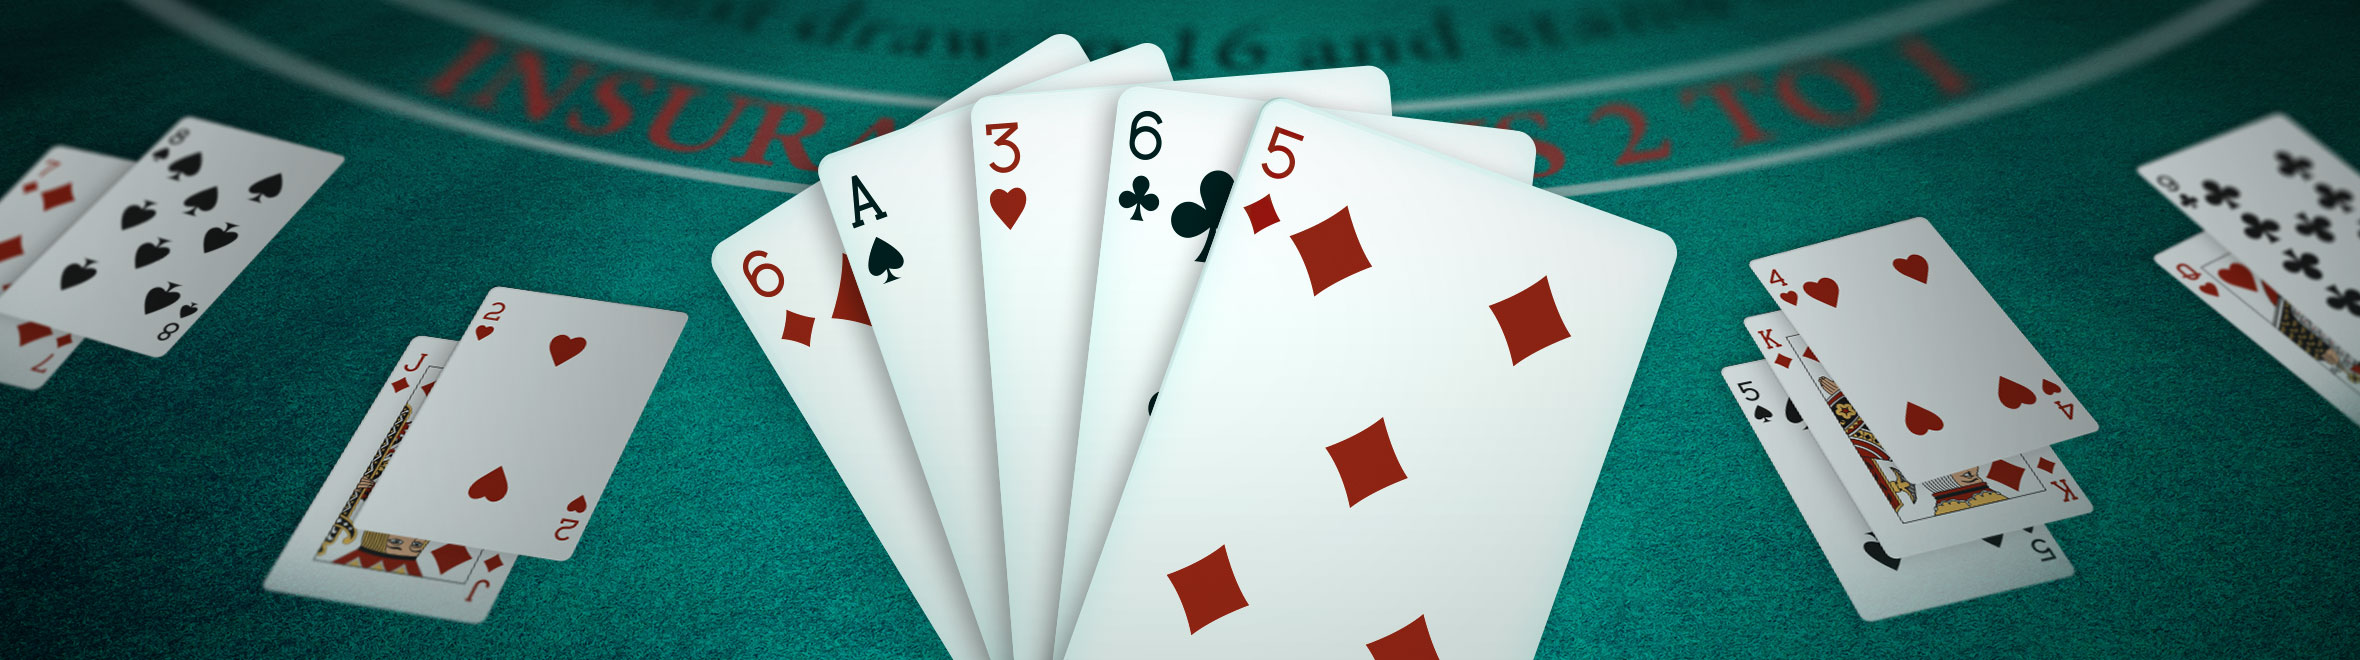 Reto de Blackjack - Five Card Charlie